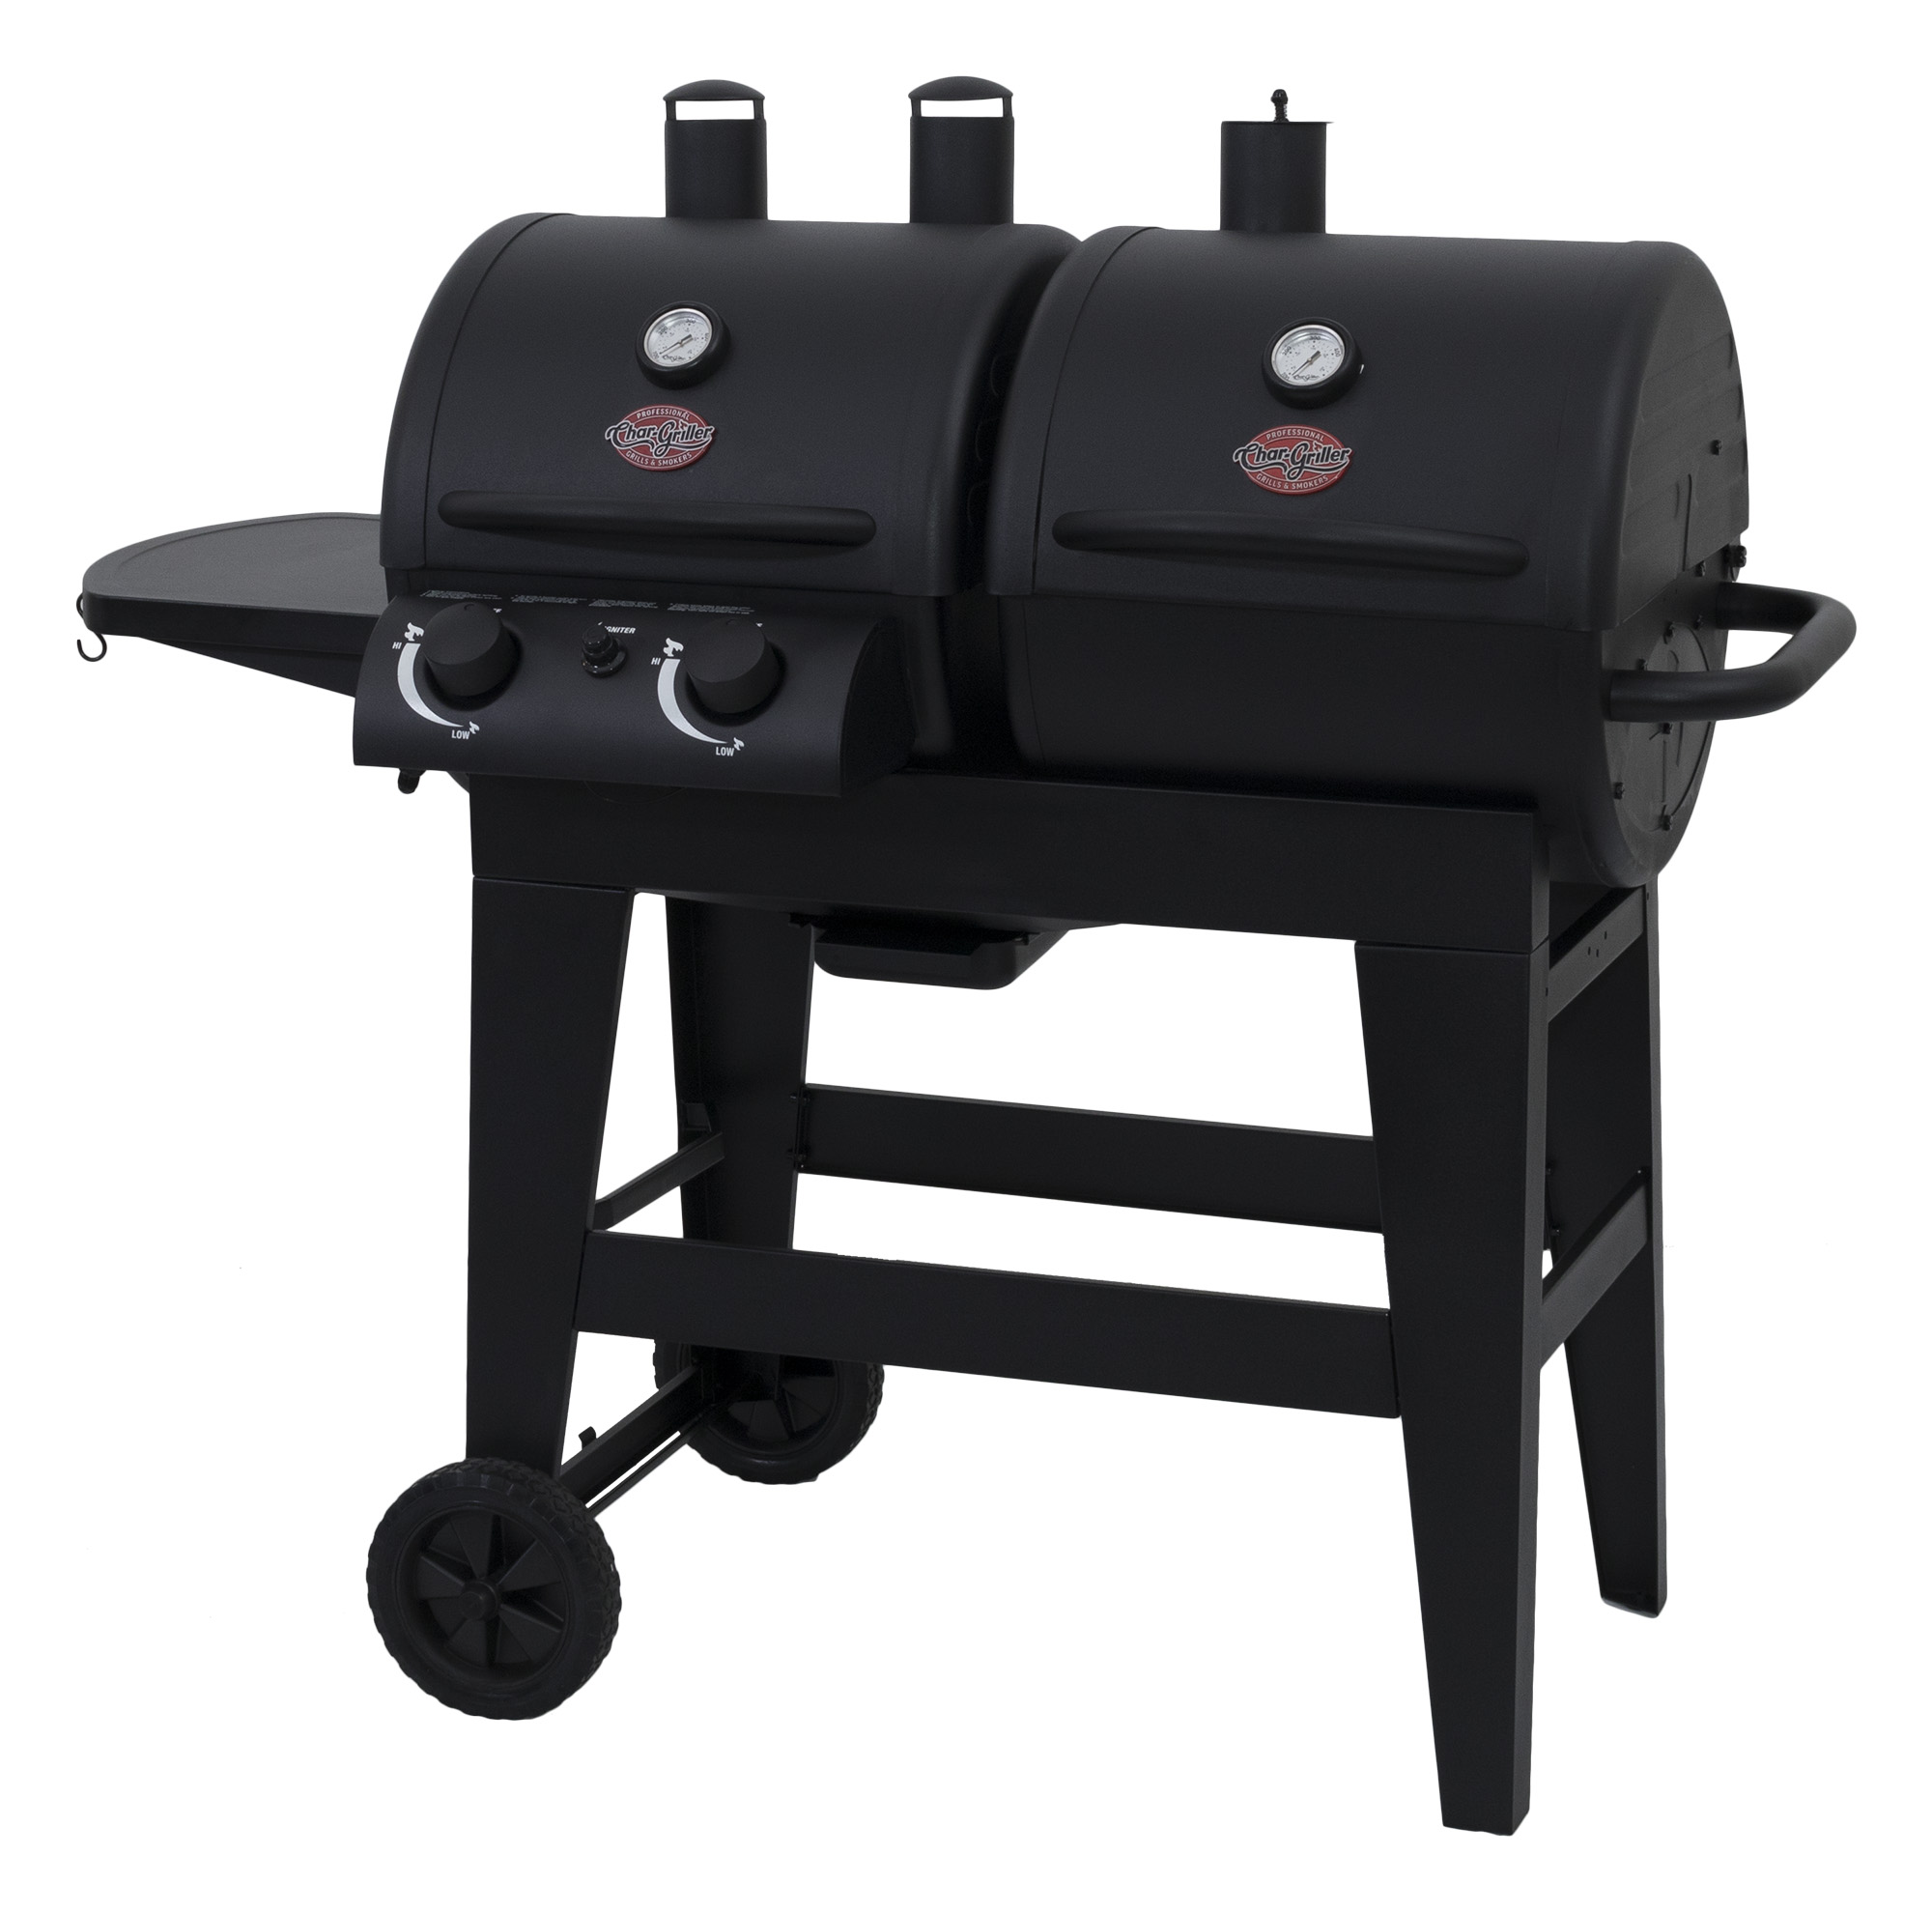 Char-Griller Dual 2 Burner Charcoal & Gas Grill, Black, E5030